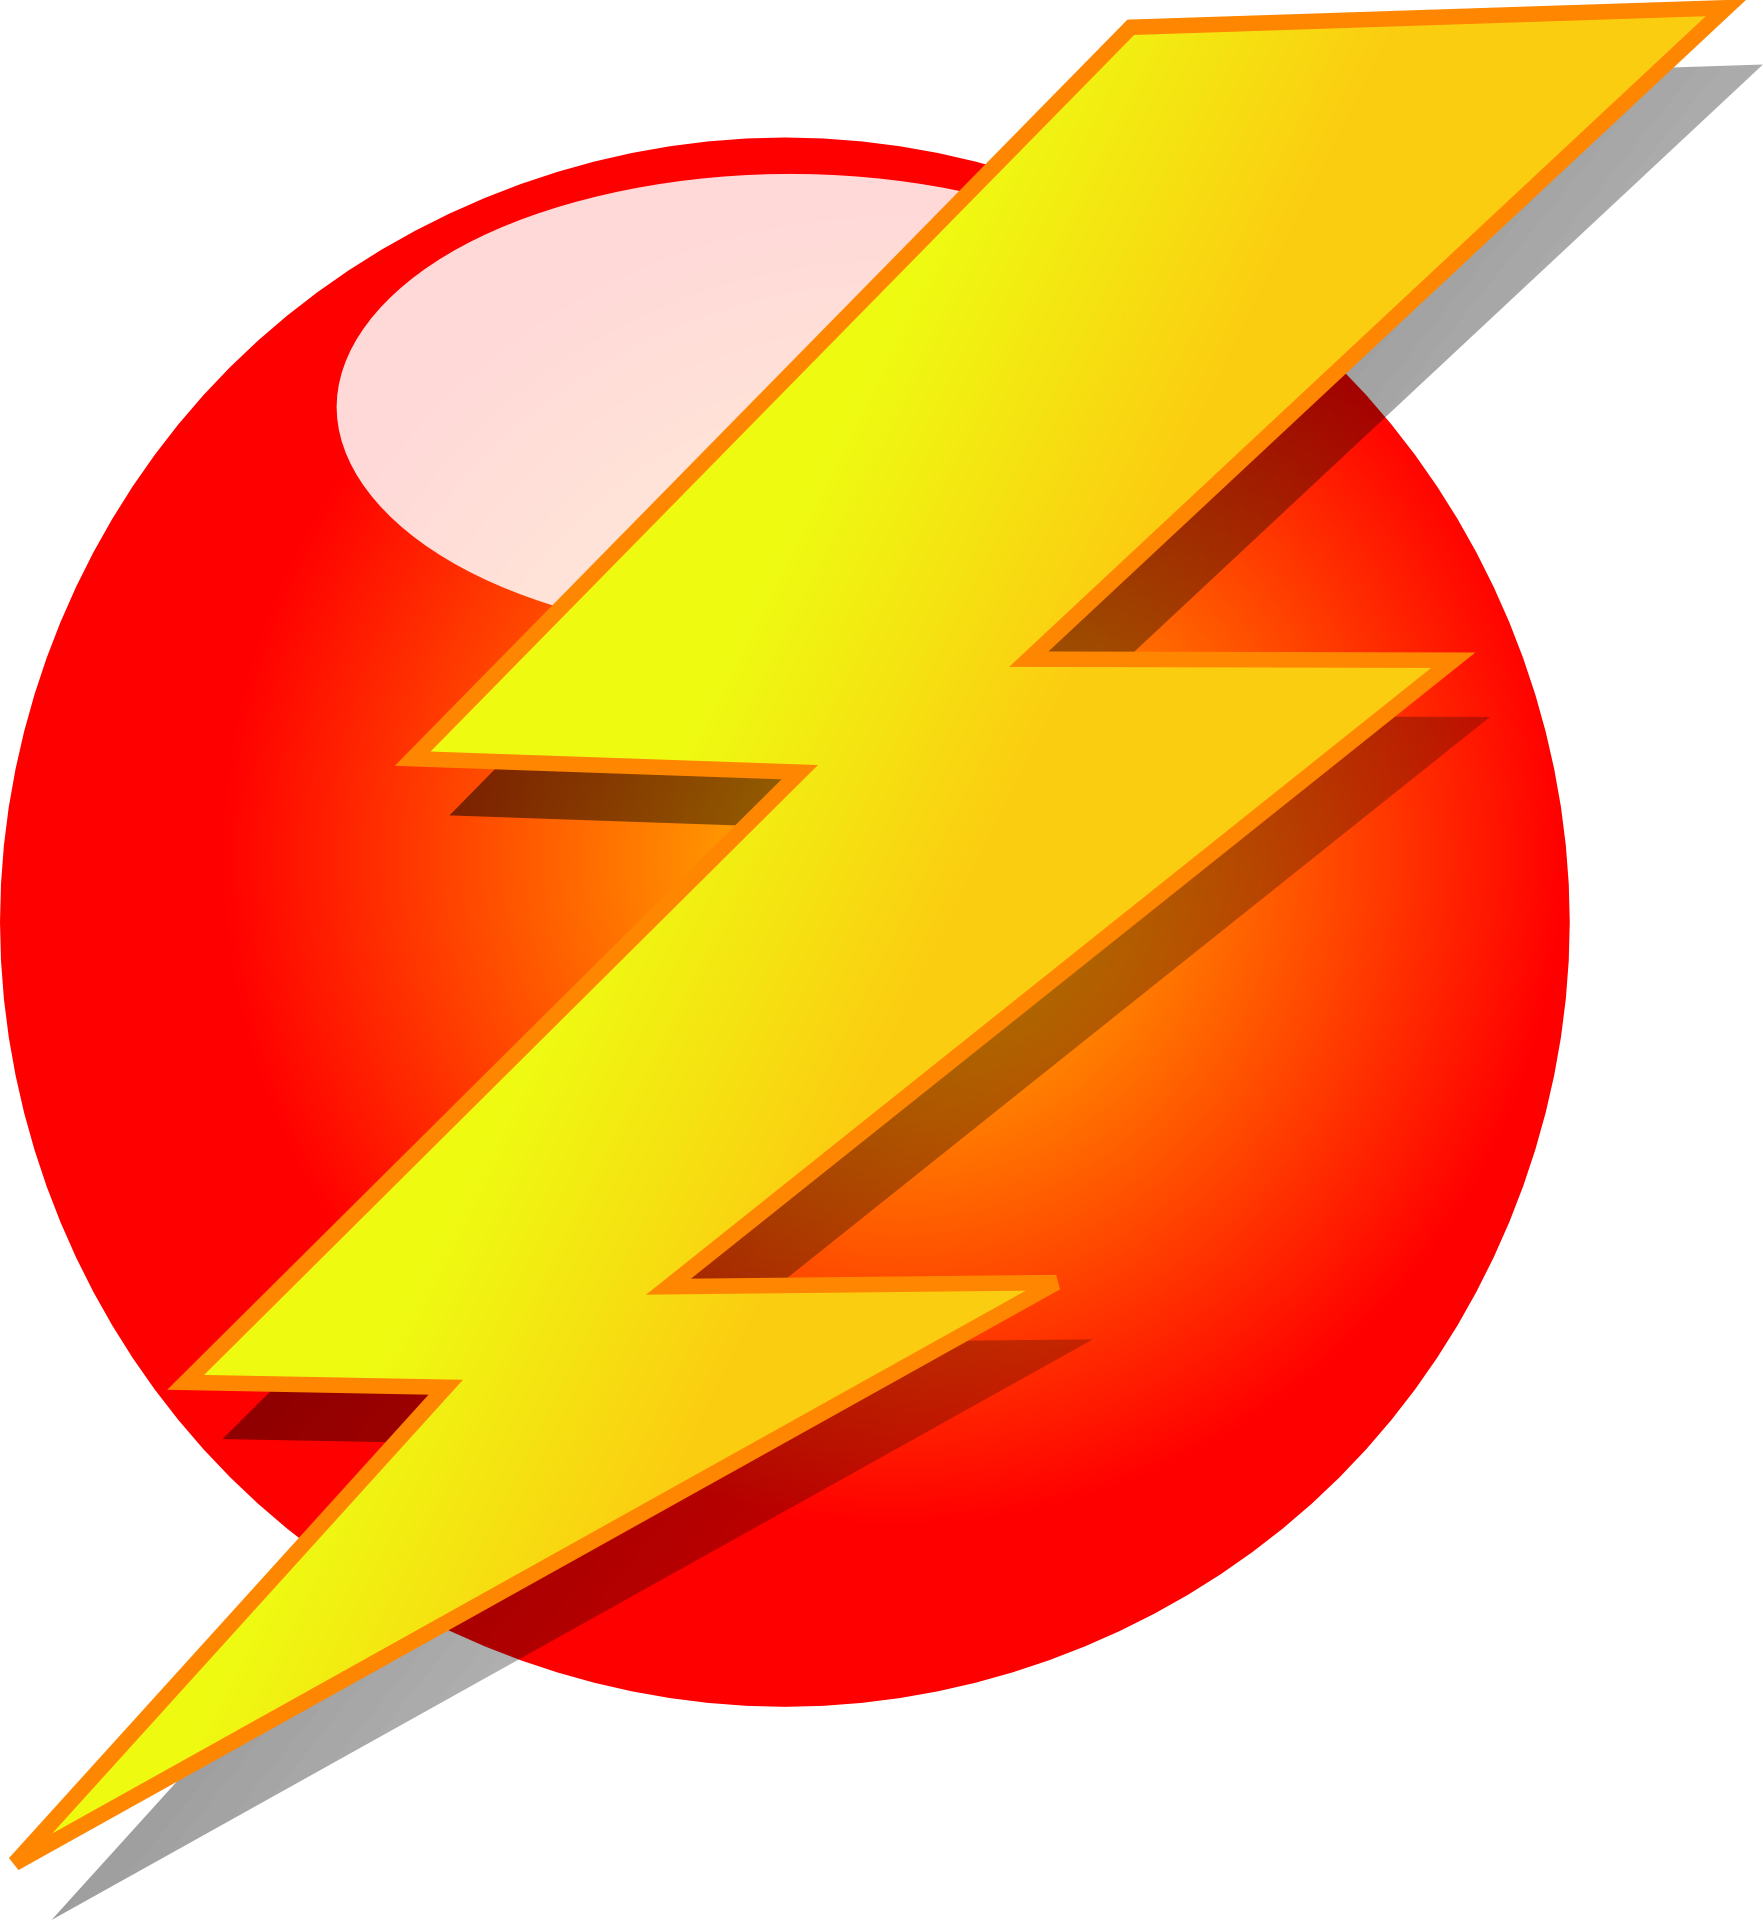 Electricity electric power symbol. Lightning clipart red yellow